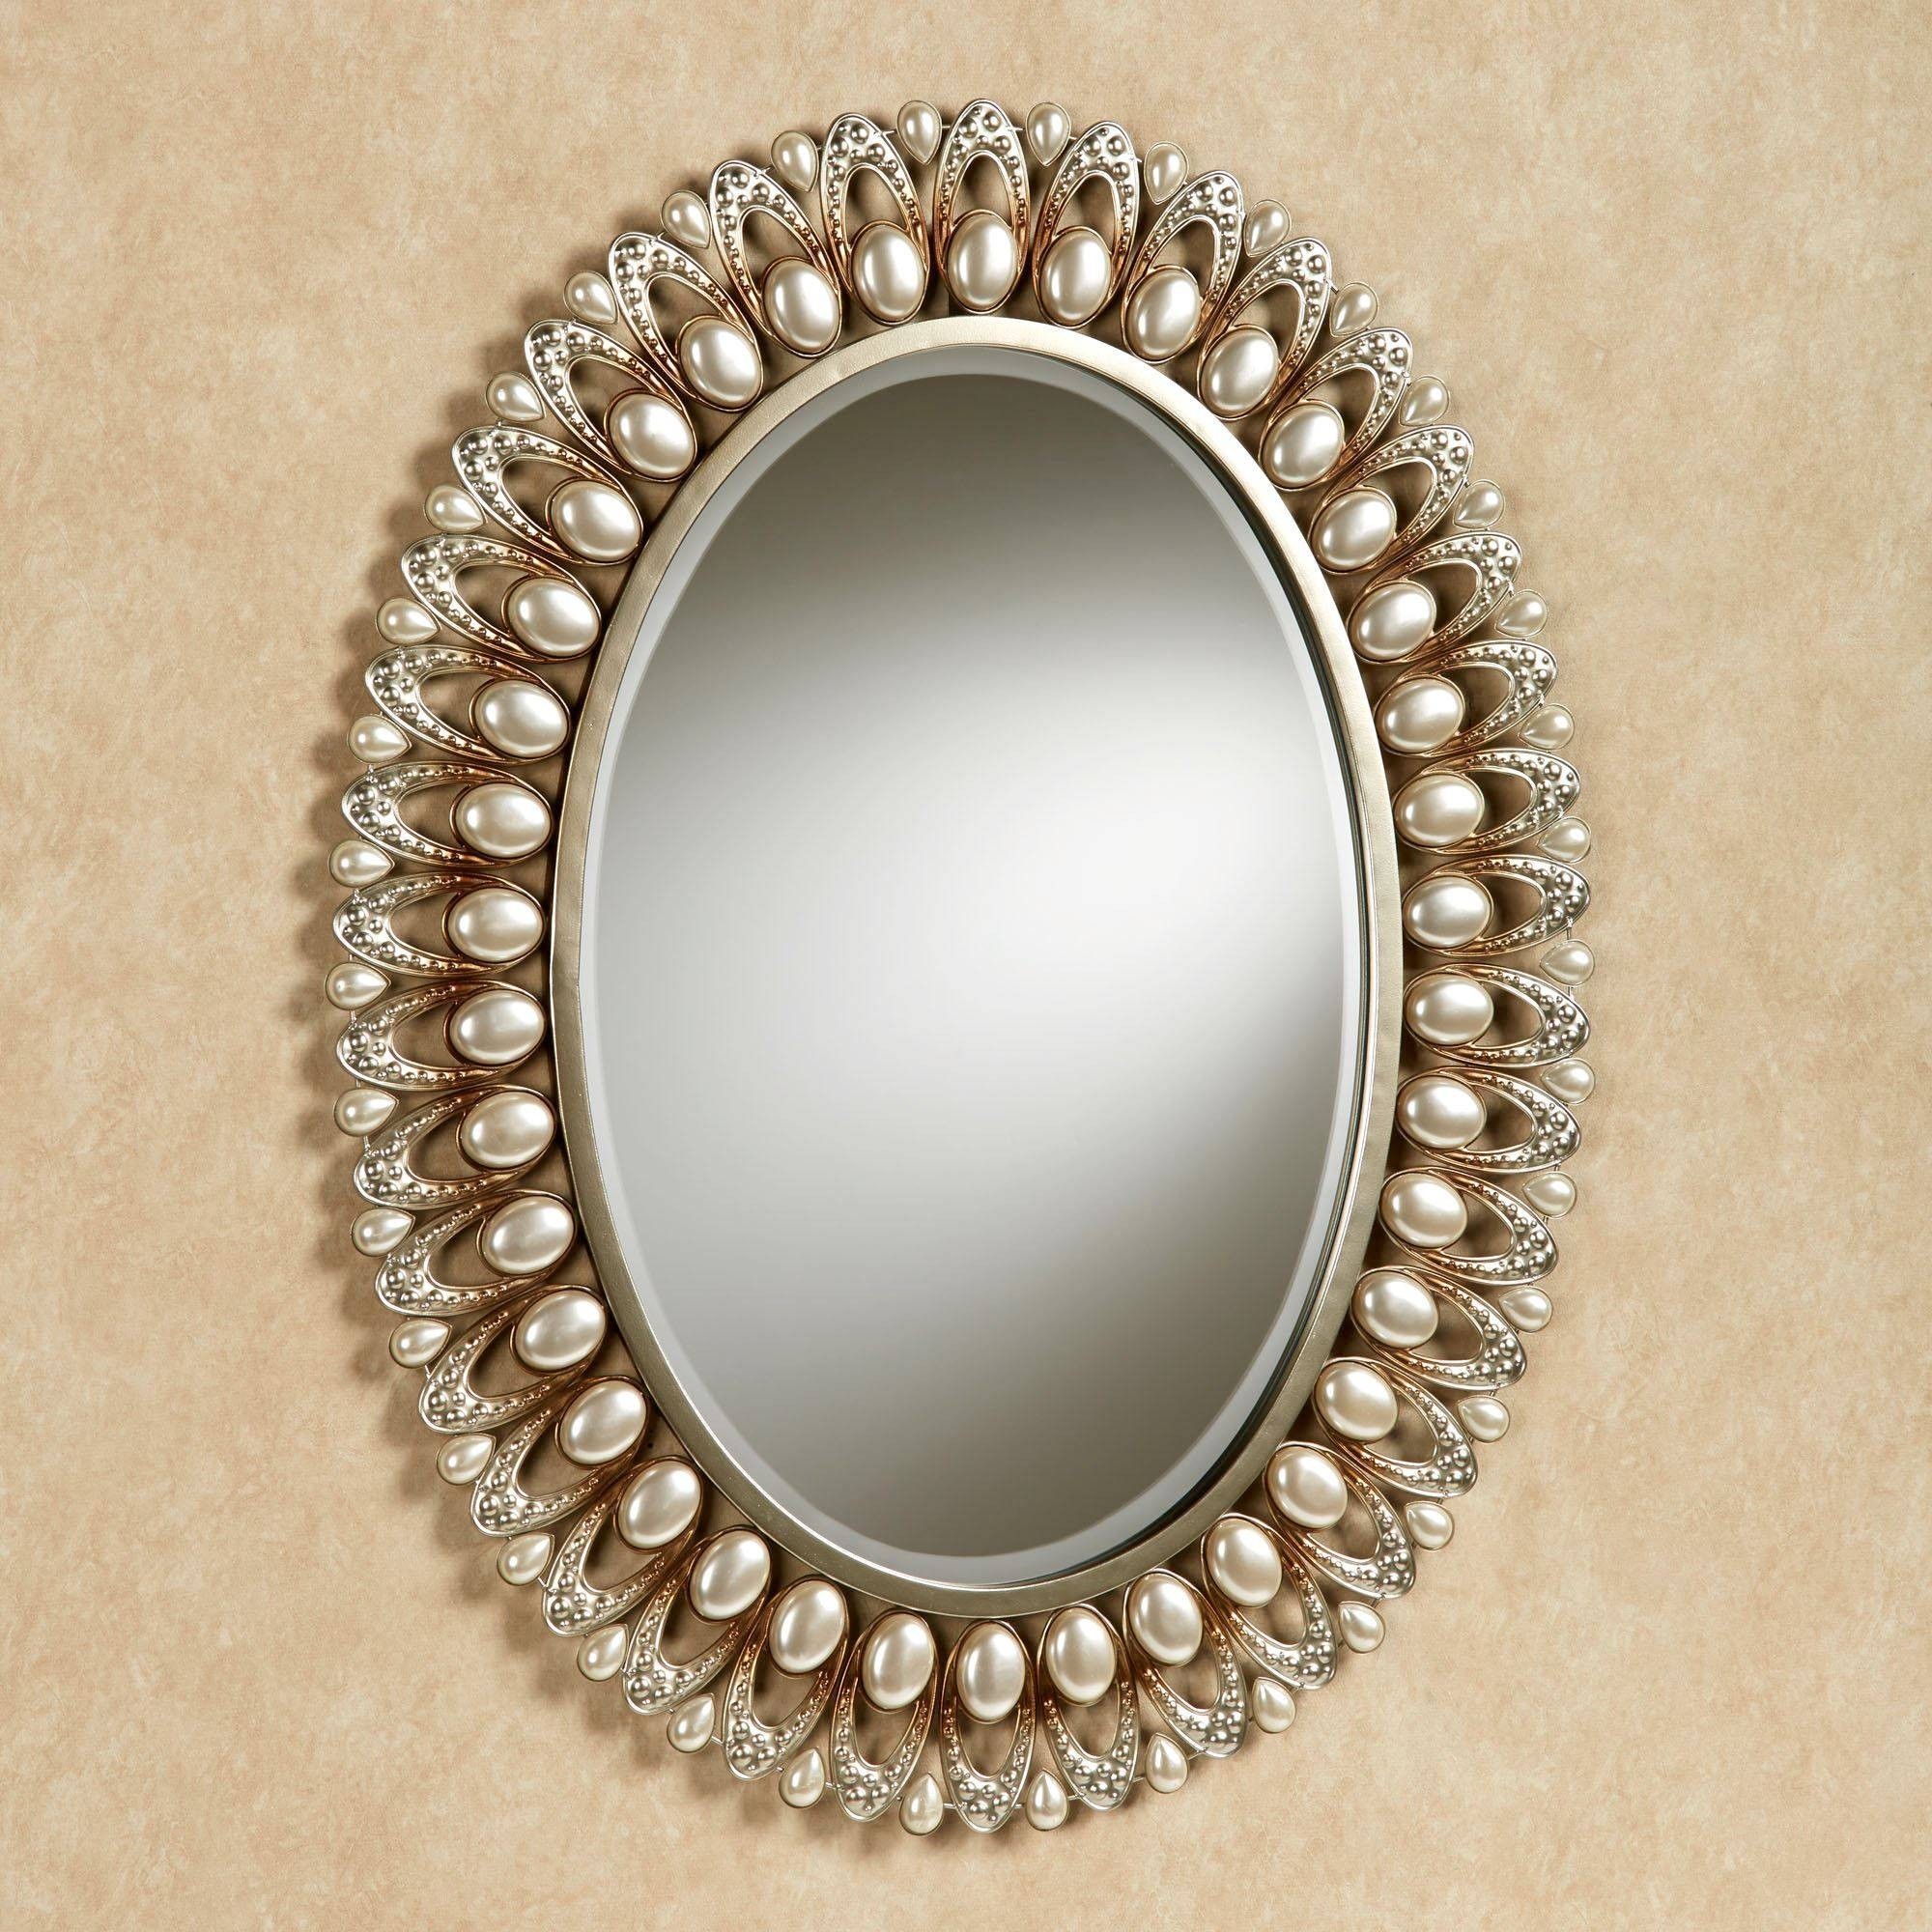 Wall Decor | Touch Of Class regarding Ornamental Mirrors (Image 24 of 25)